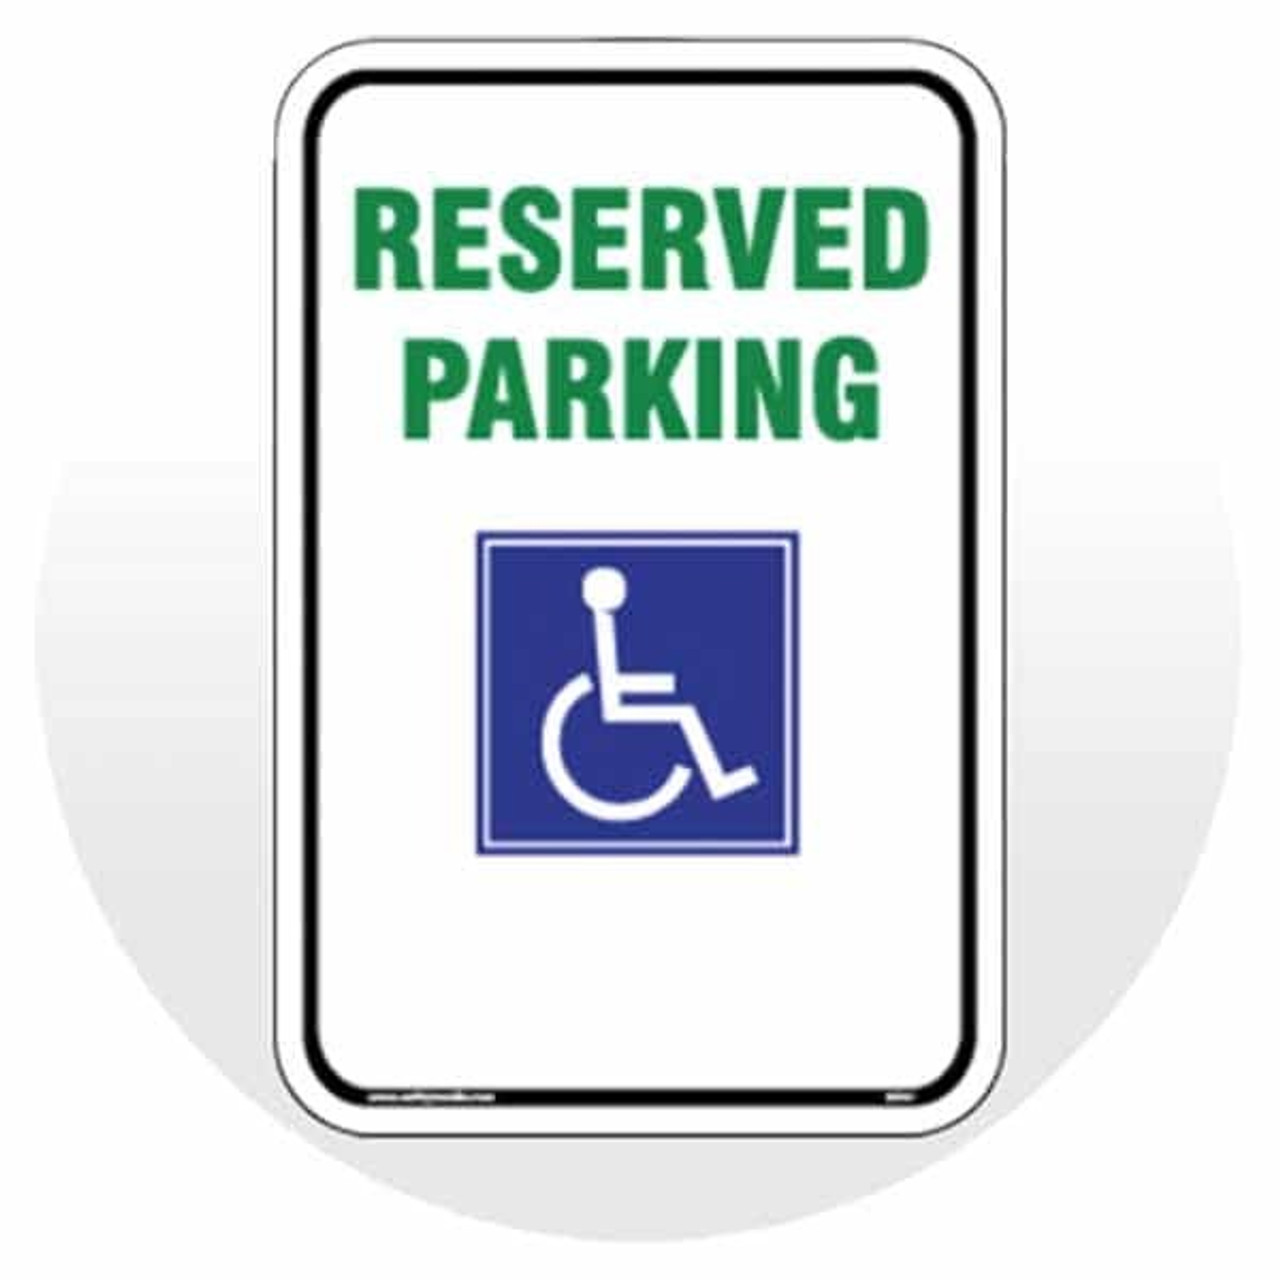 Accesible Parking Signs